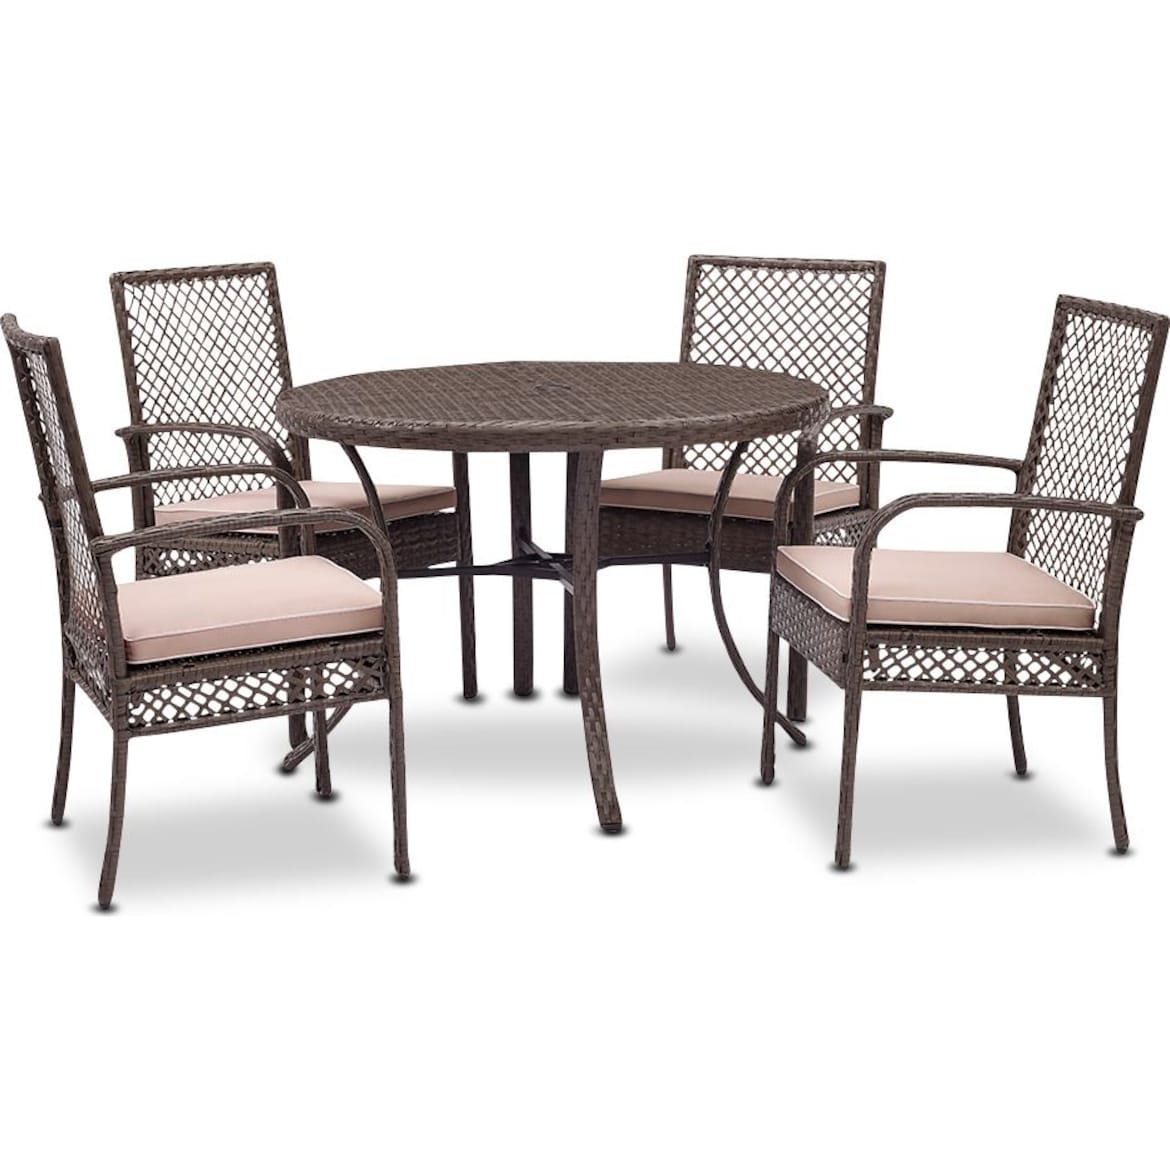 Zuma Outdoor Dining Table And 4 Chairs Gray American